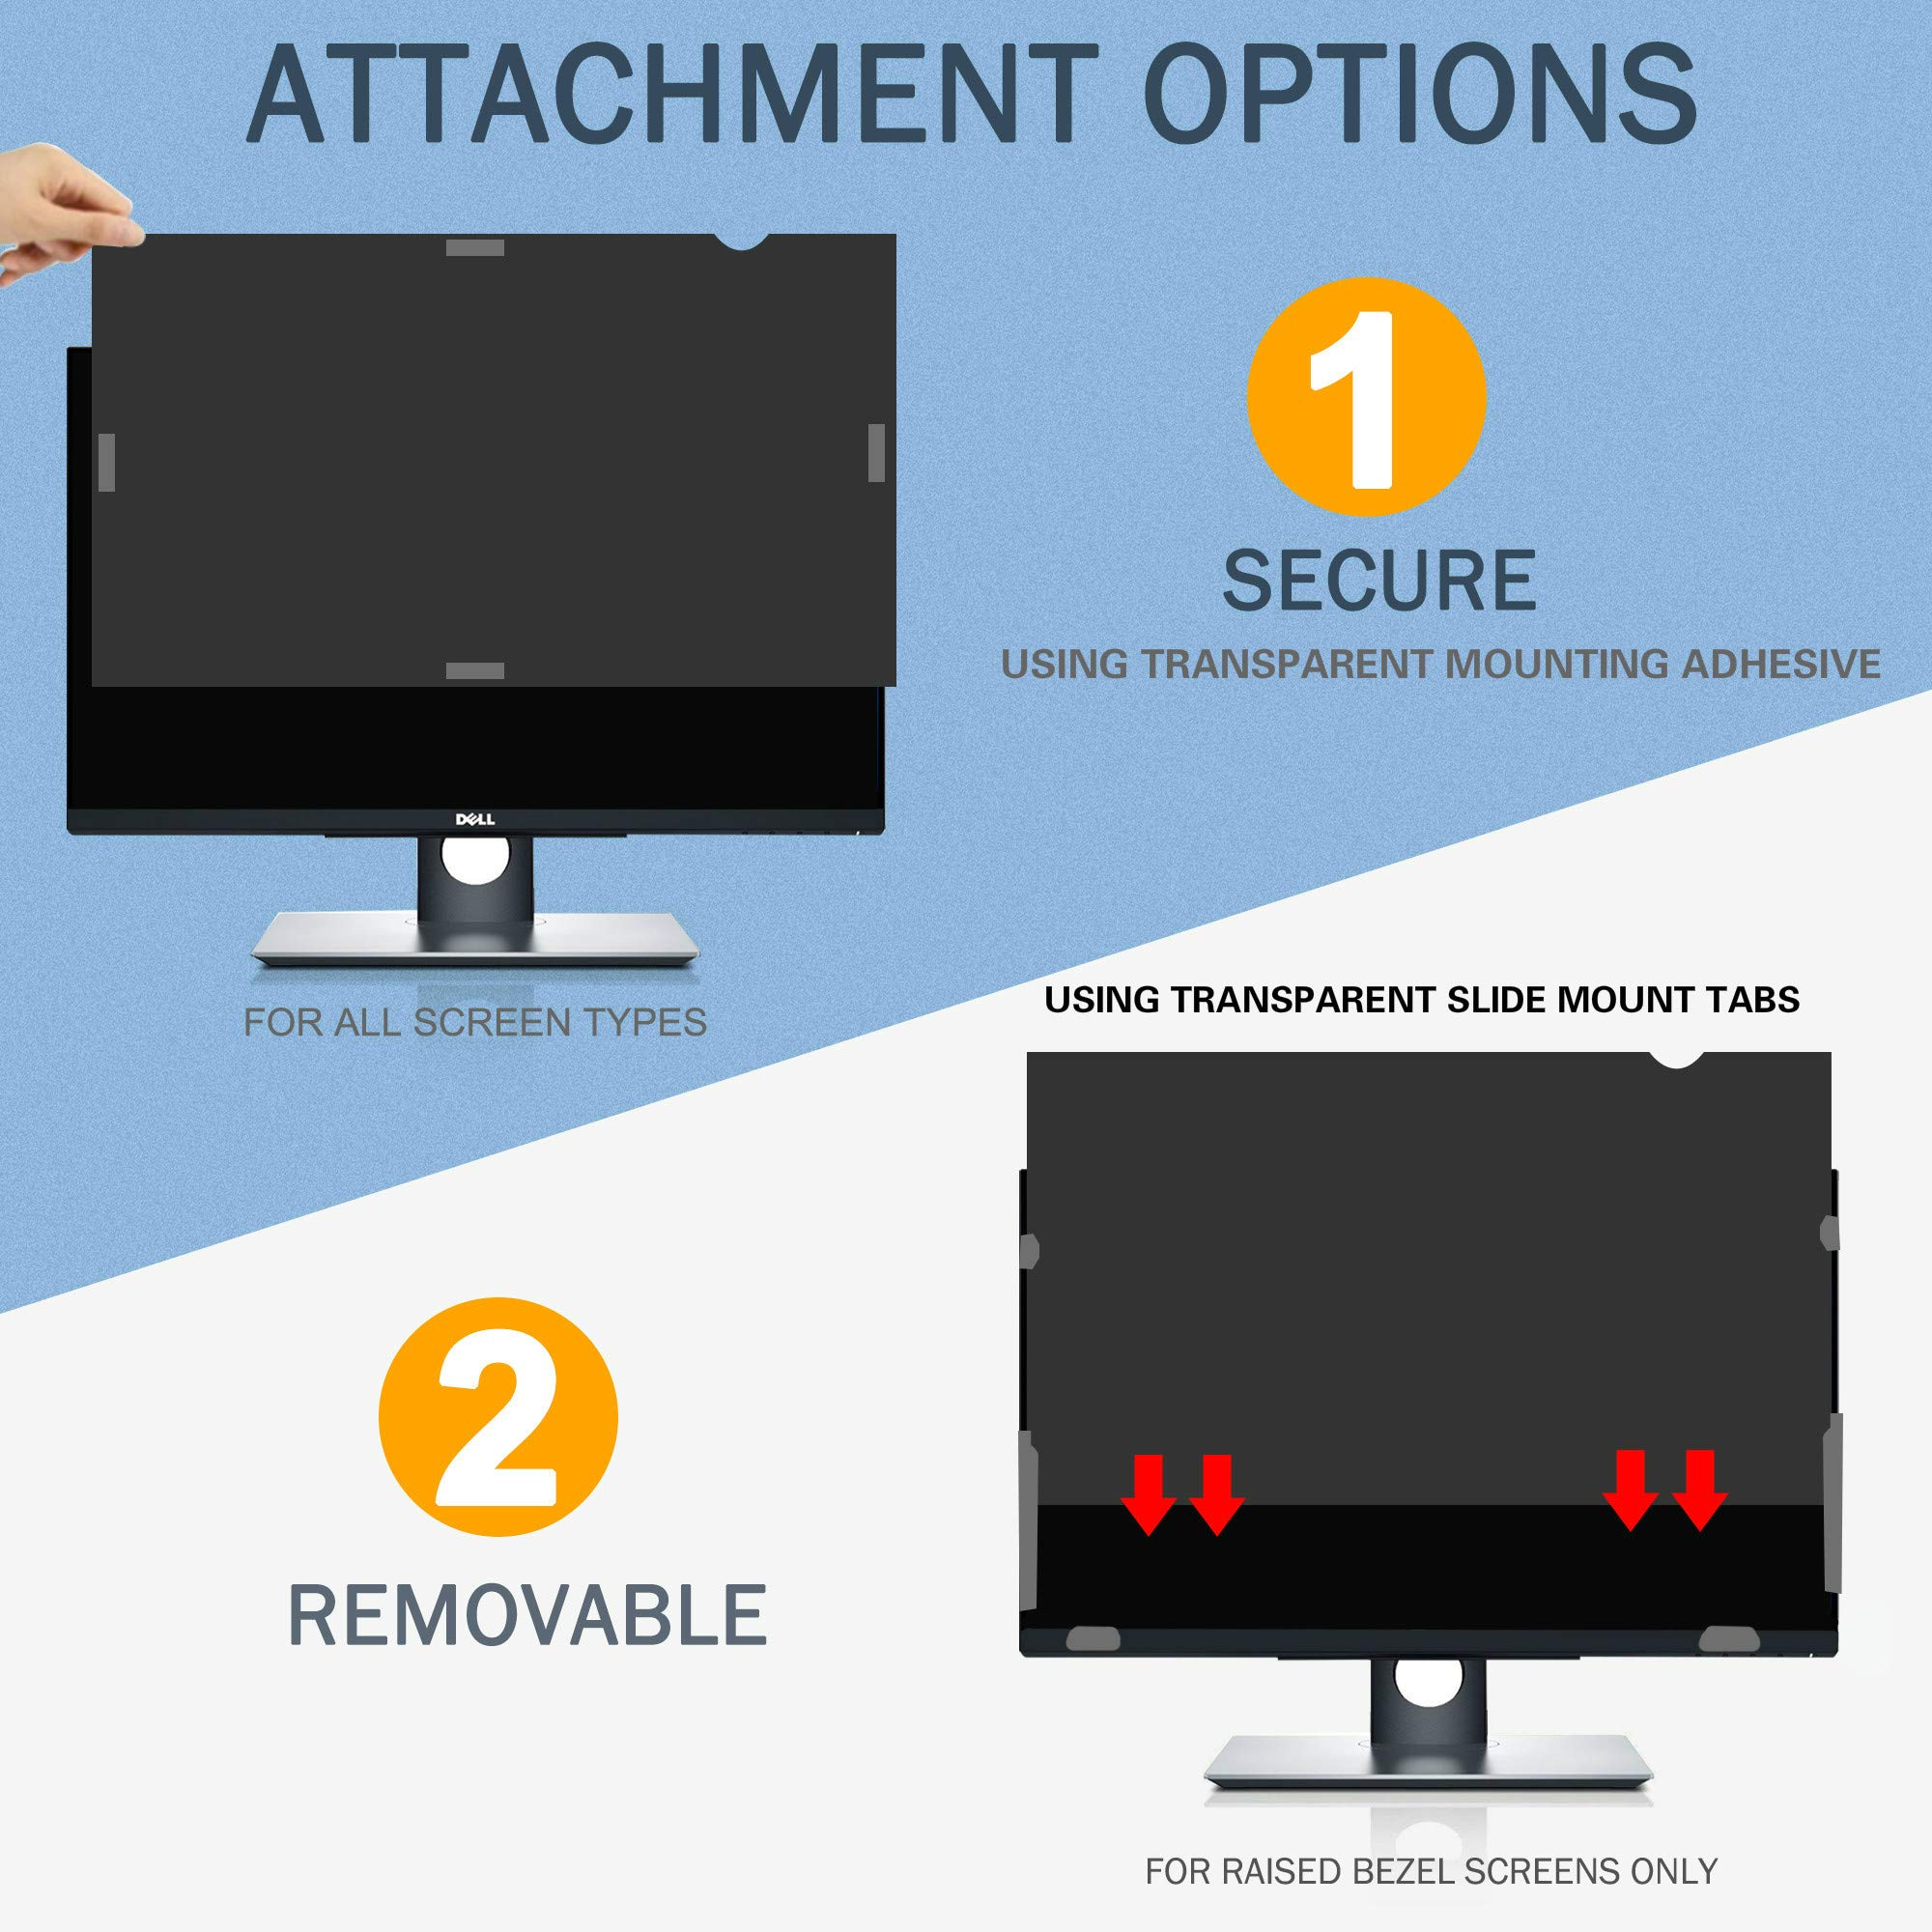 SKYLARKING 27 inches Computer Privacy Screen Filter, Anti-Spy Anti-Glare Screen Protector Film Compatible 27'' Widescreen Computer LCD Monitor with Aspect Ratio 16:9 (598mm x 337mm) by Skylarking (Image #7)